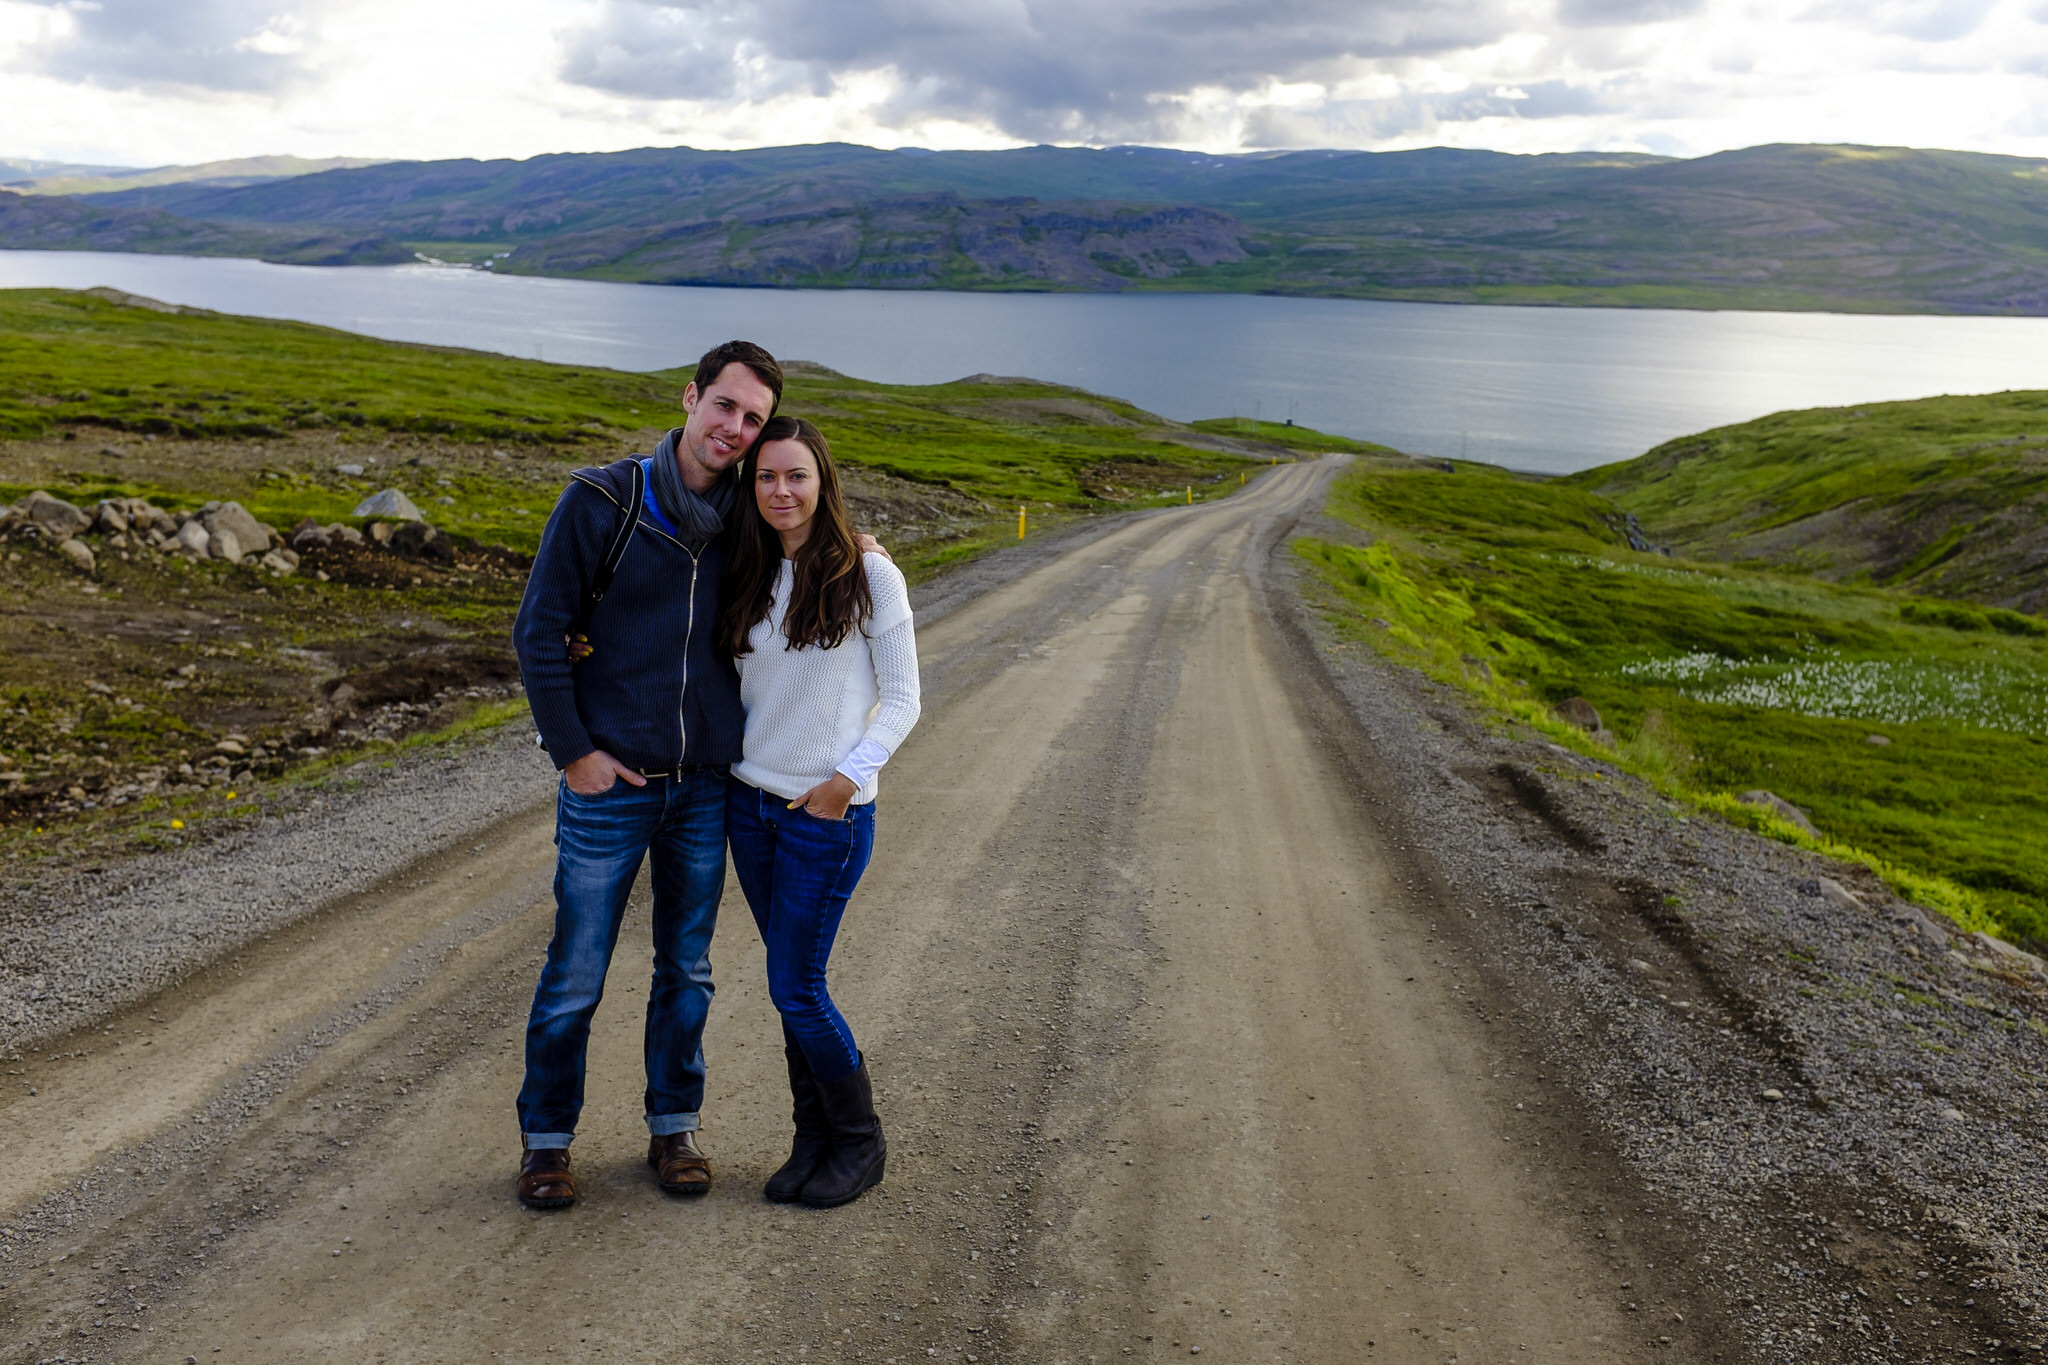 Buffy and Mike's wedding in Iceland.